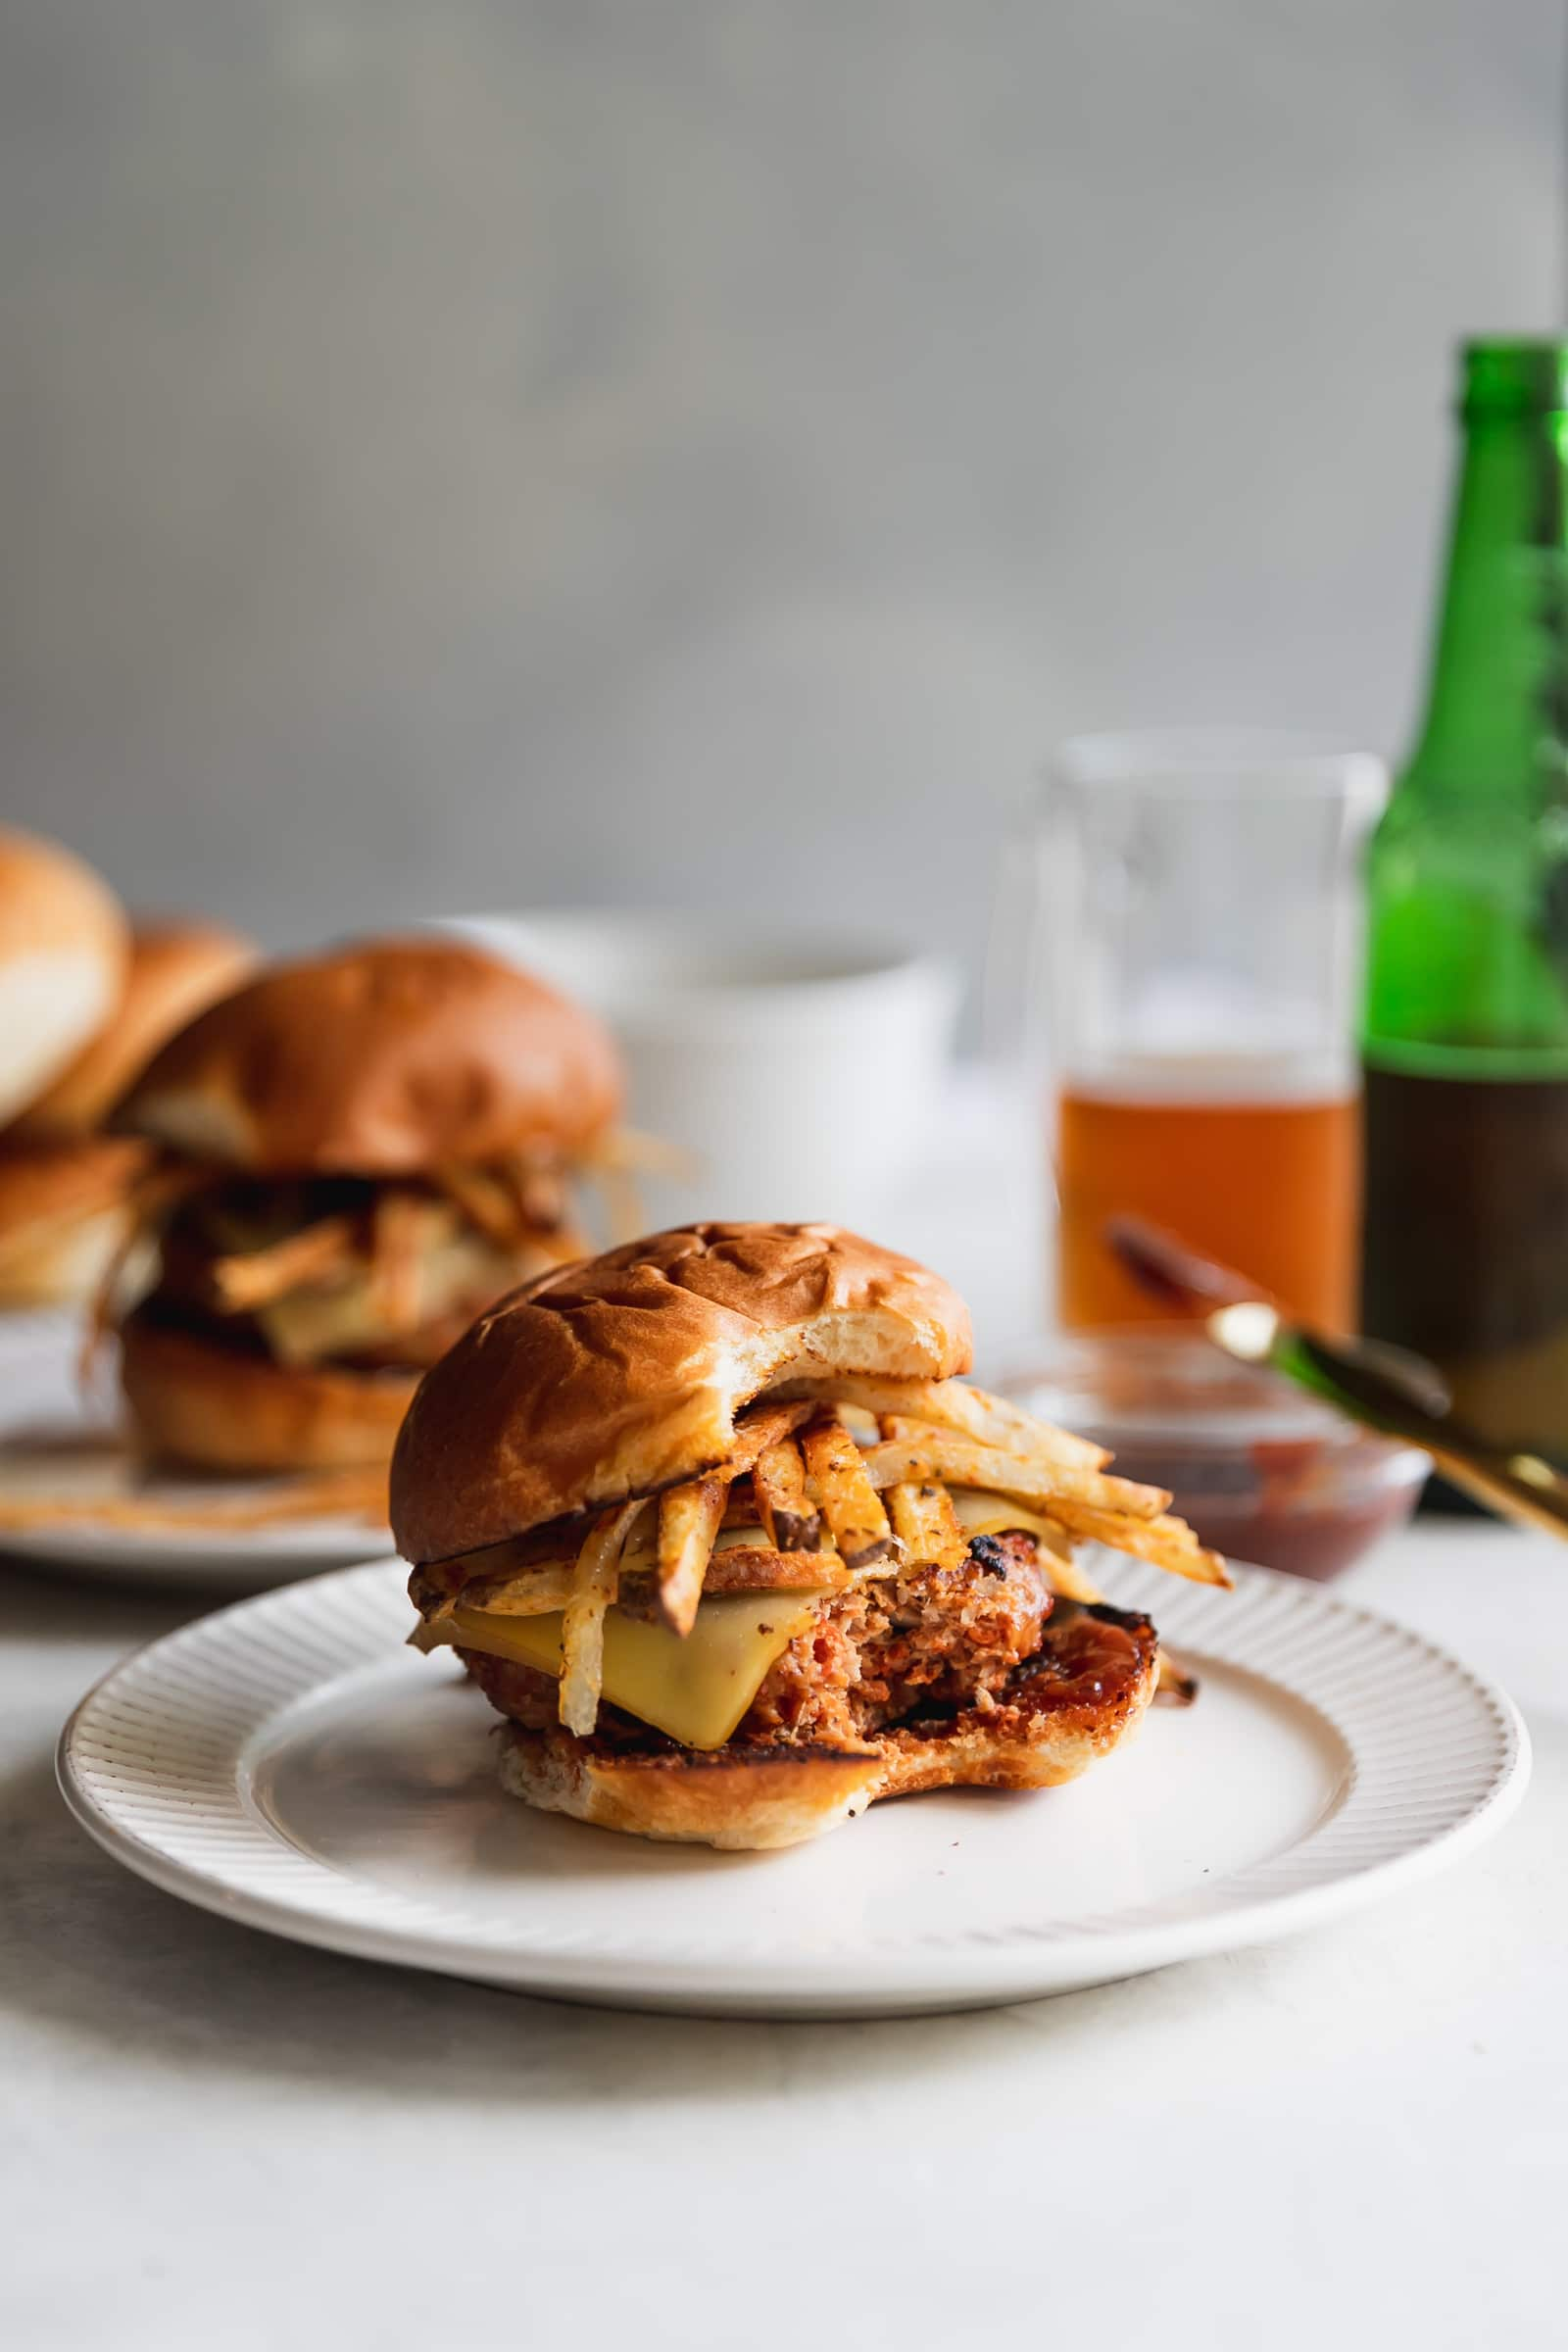 A Cuban-inspired burger made with ground turkey, chorizo, chopped onions, spices, melted gruyere, homemade shoestring potatoes, and guava BBQ sauce served on toasted hamburger buns.